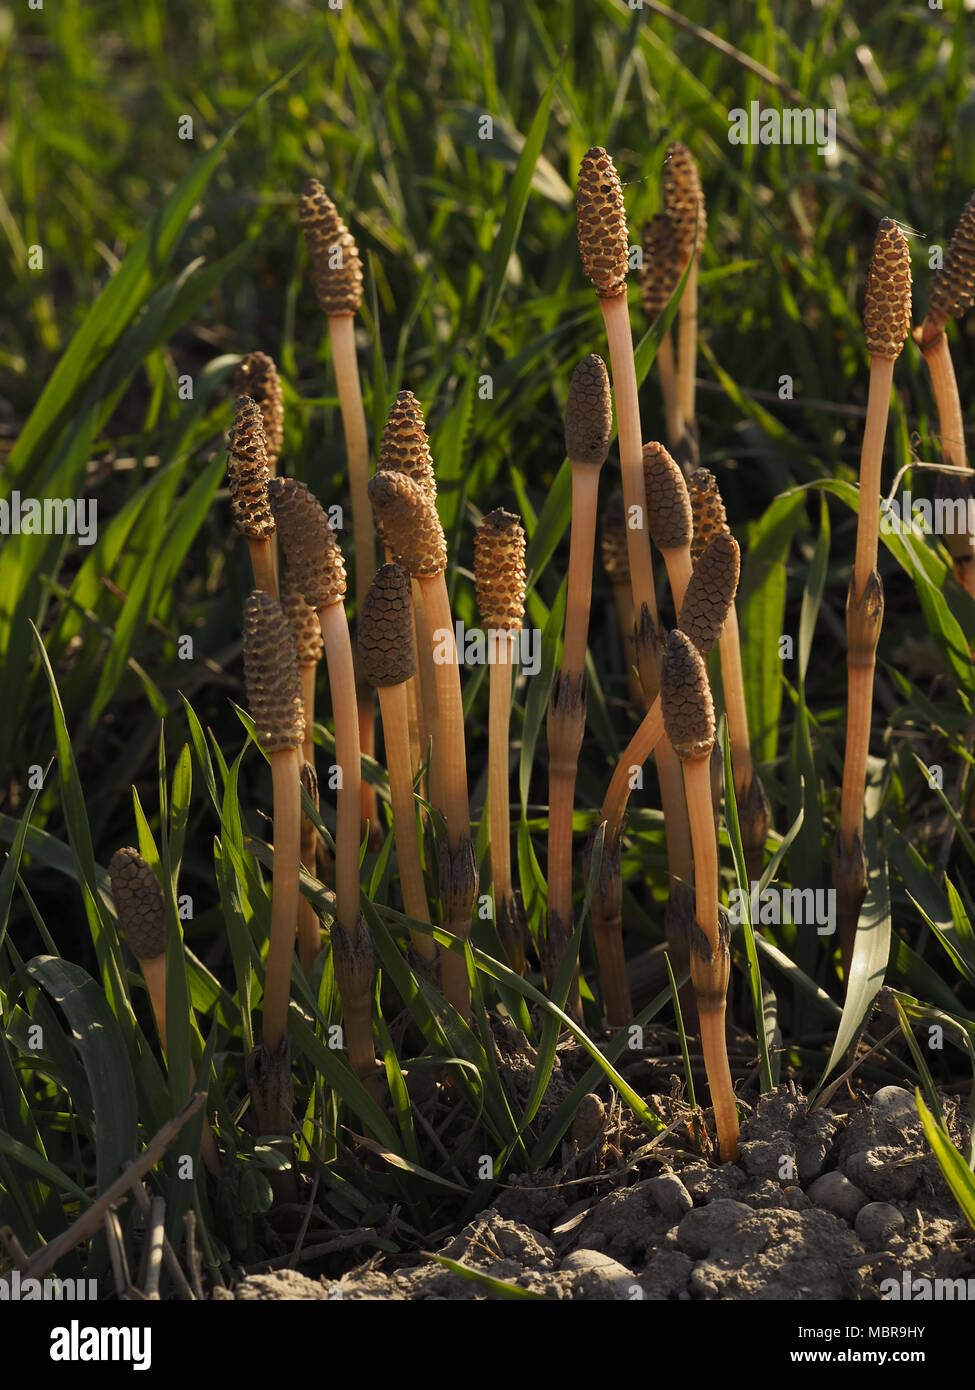 Equisetum arvense, the field horsetail or common horsetail, is an herbaceous perennial plant in the Equisetopsida Stock Photo